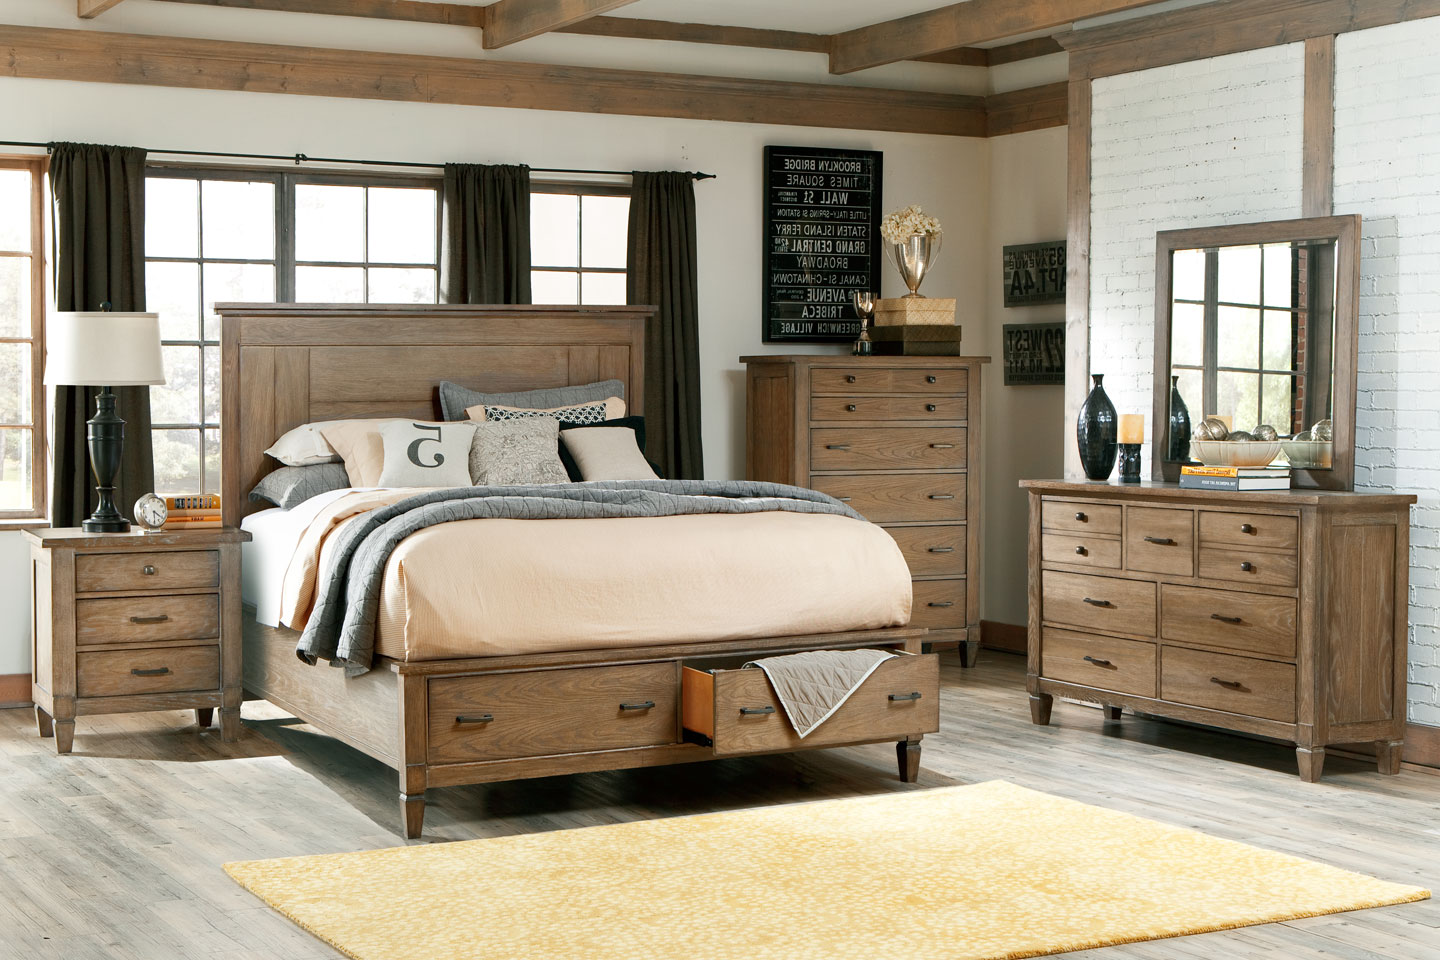 gavin wood bedroom furniture collection wood bedroom furniture